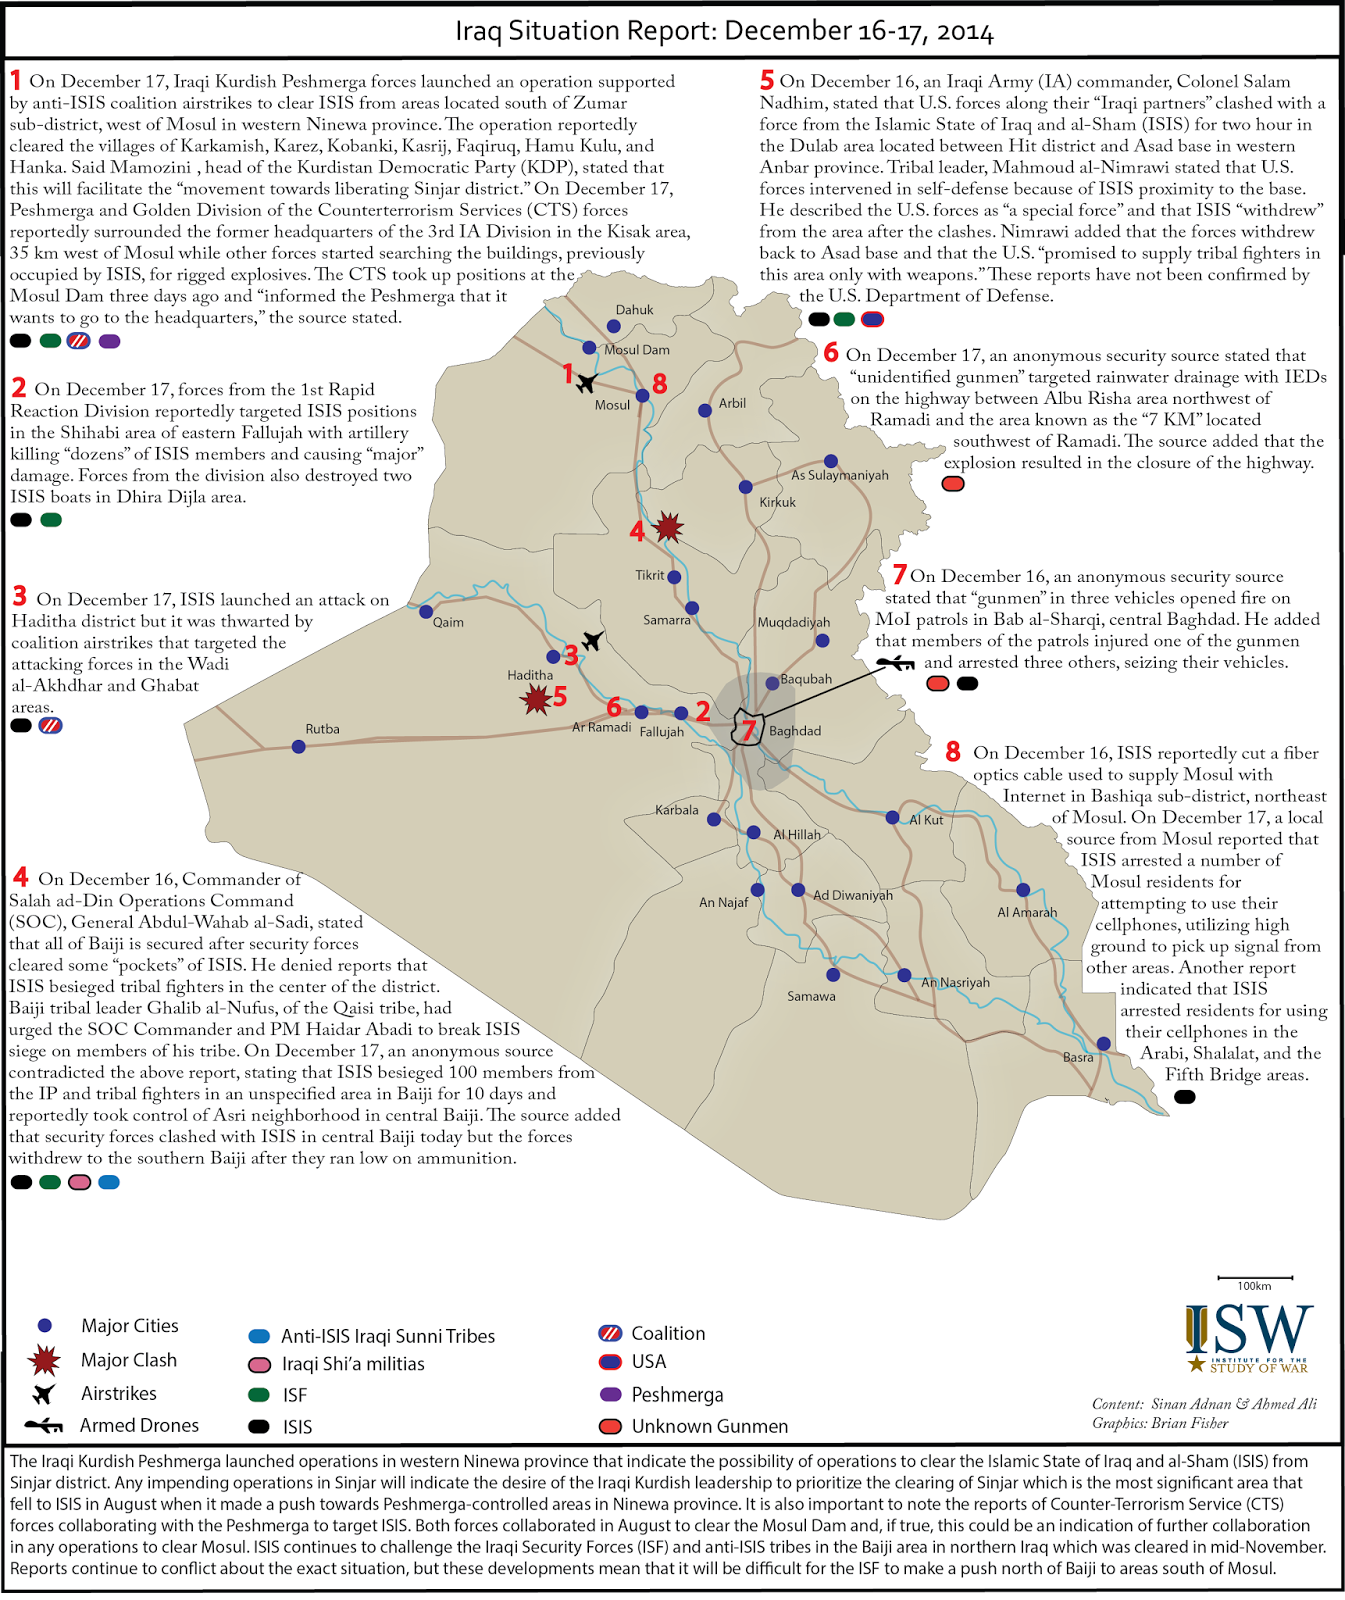 (16-17 dec, 2014) Situation Report by ISW